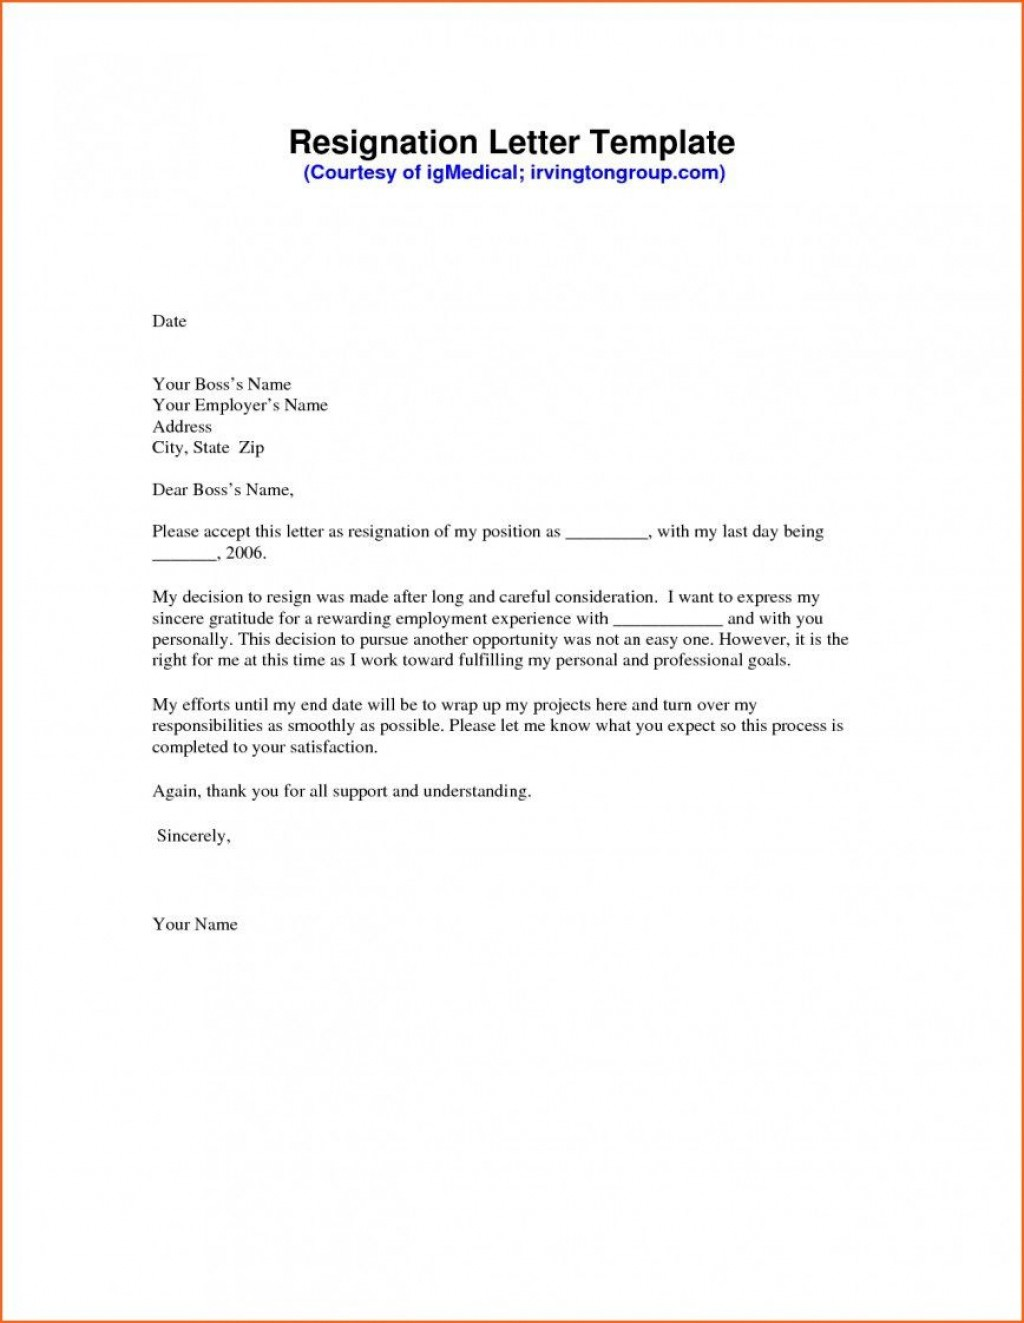 008 Sensational Template For Letter Of Resignation High Def  Free With Notice Period WordLarge